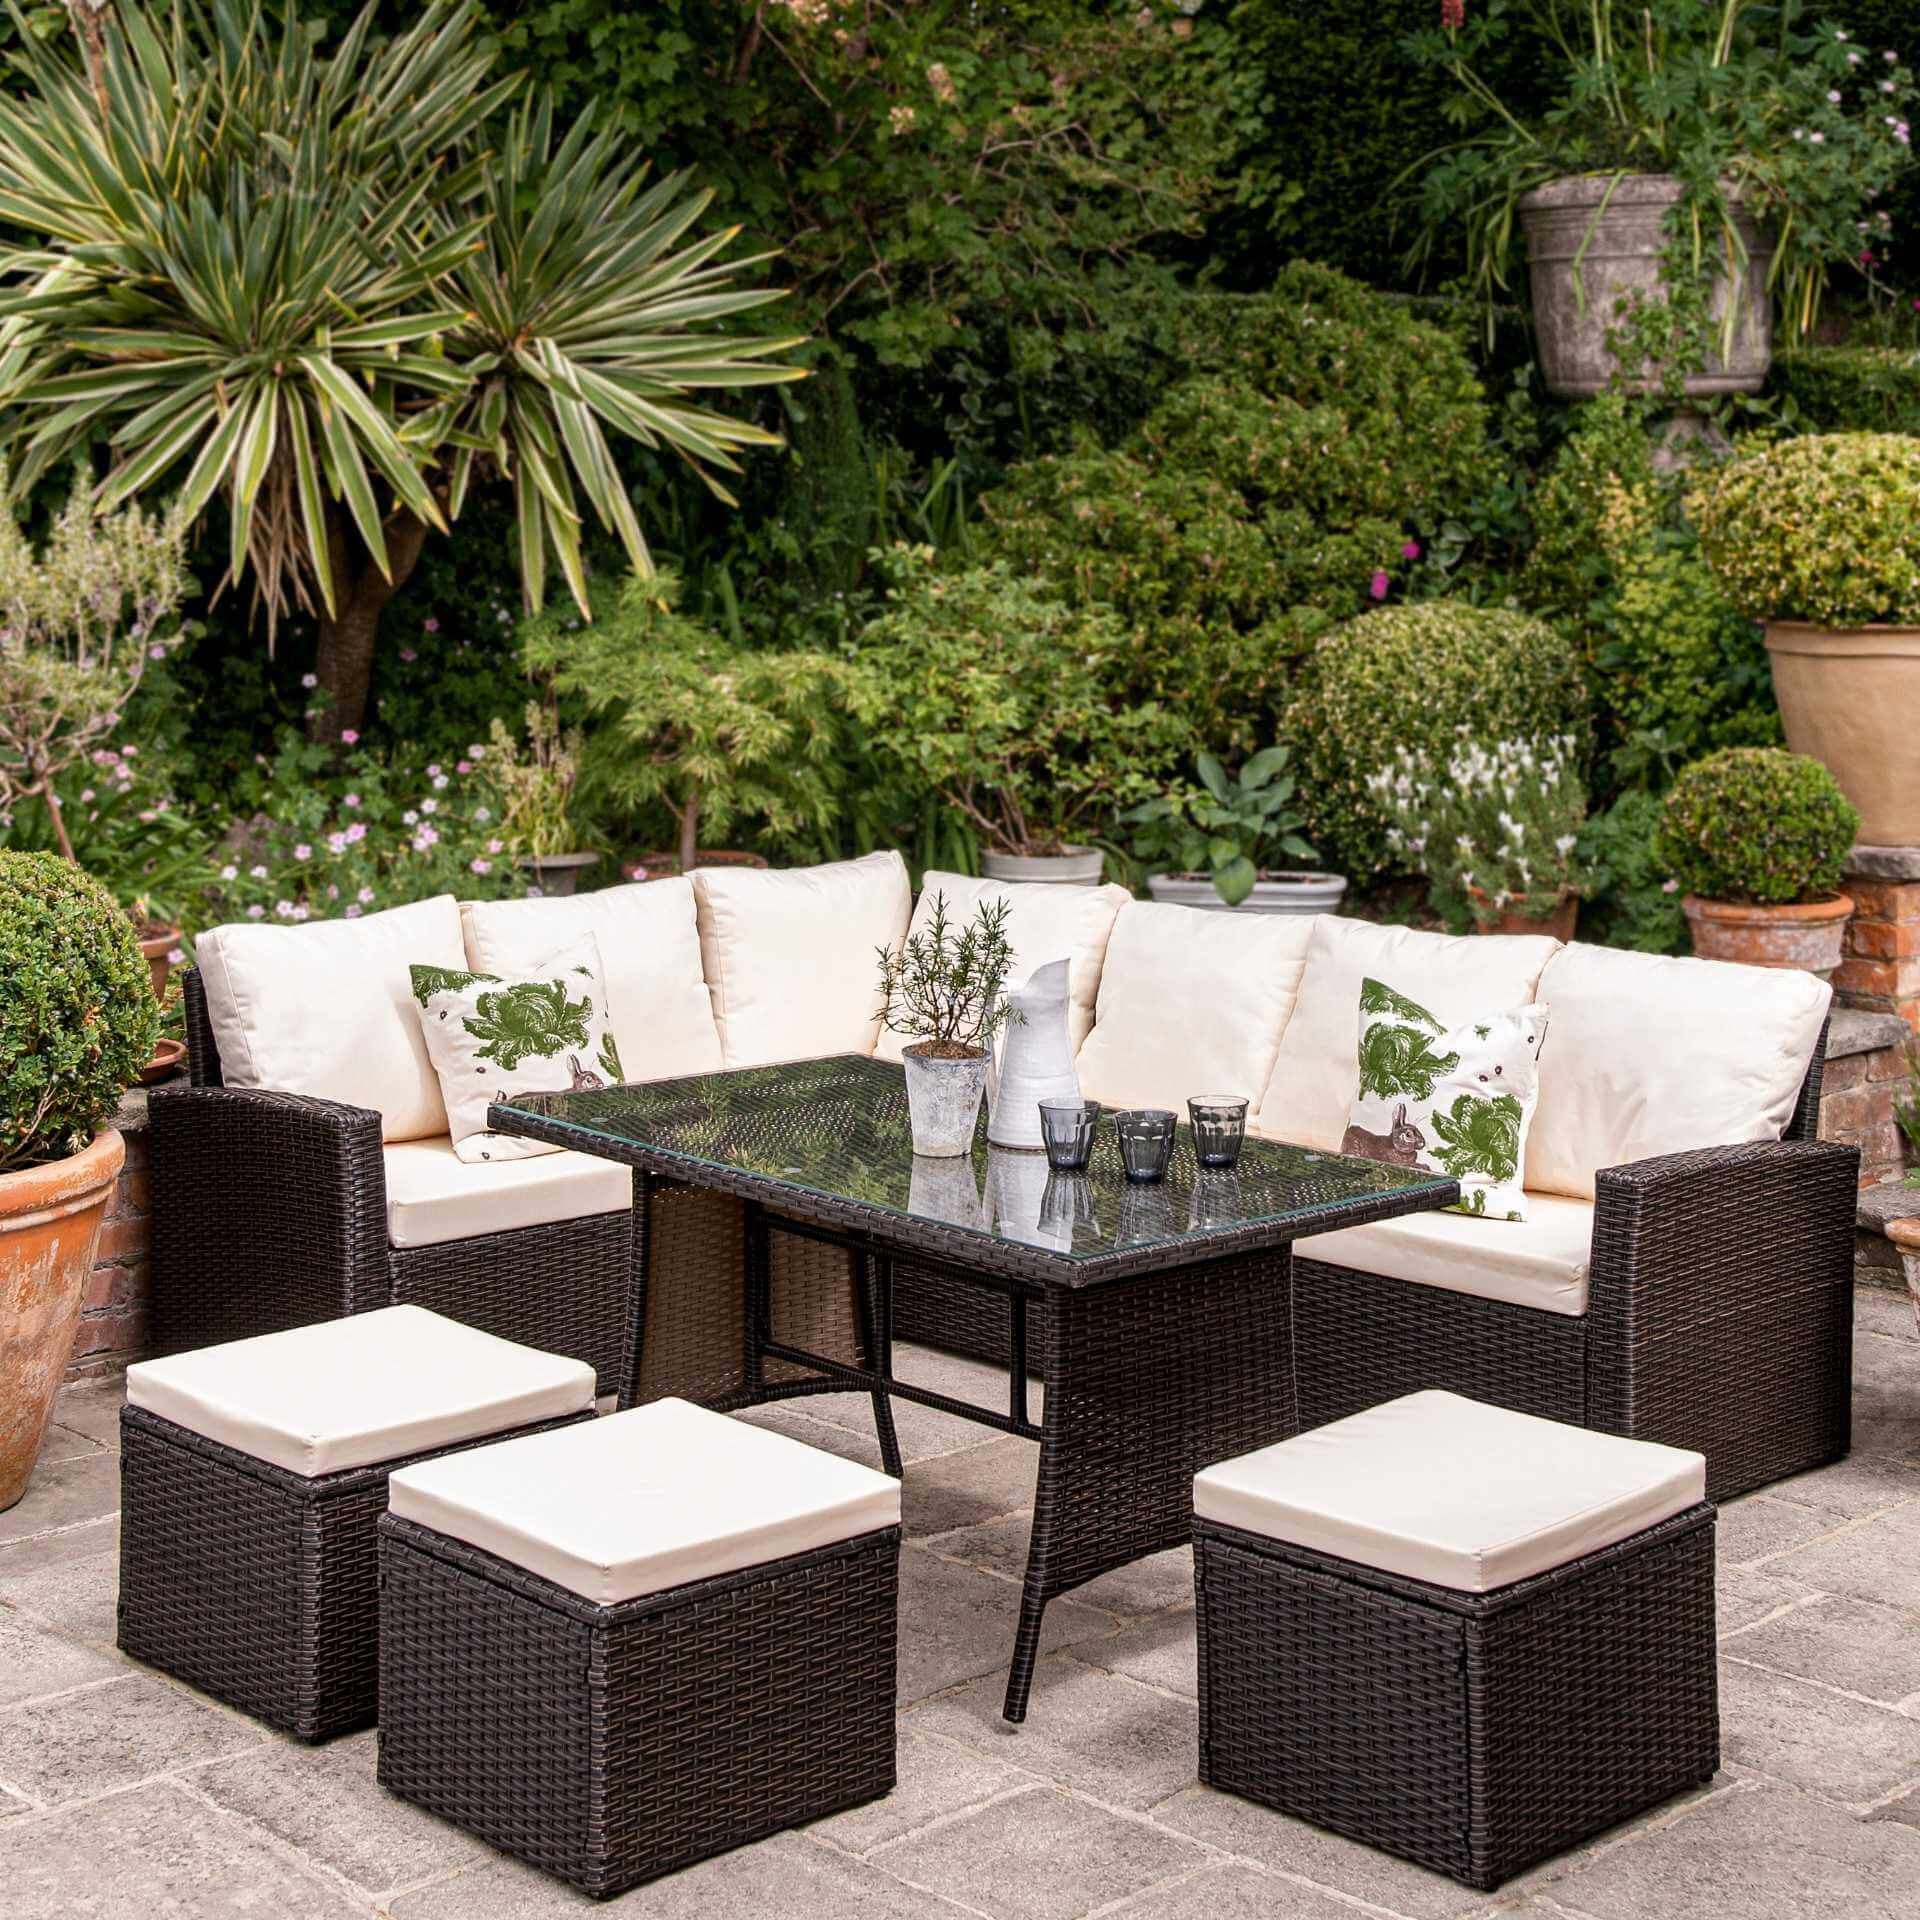 9 Seater Rattan Outdoor Corner Sofa Set - Brown Weave